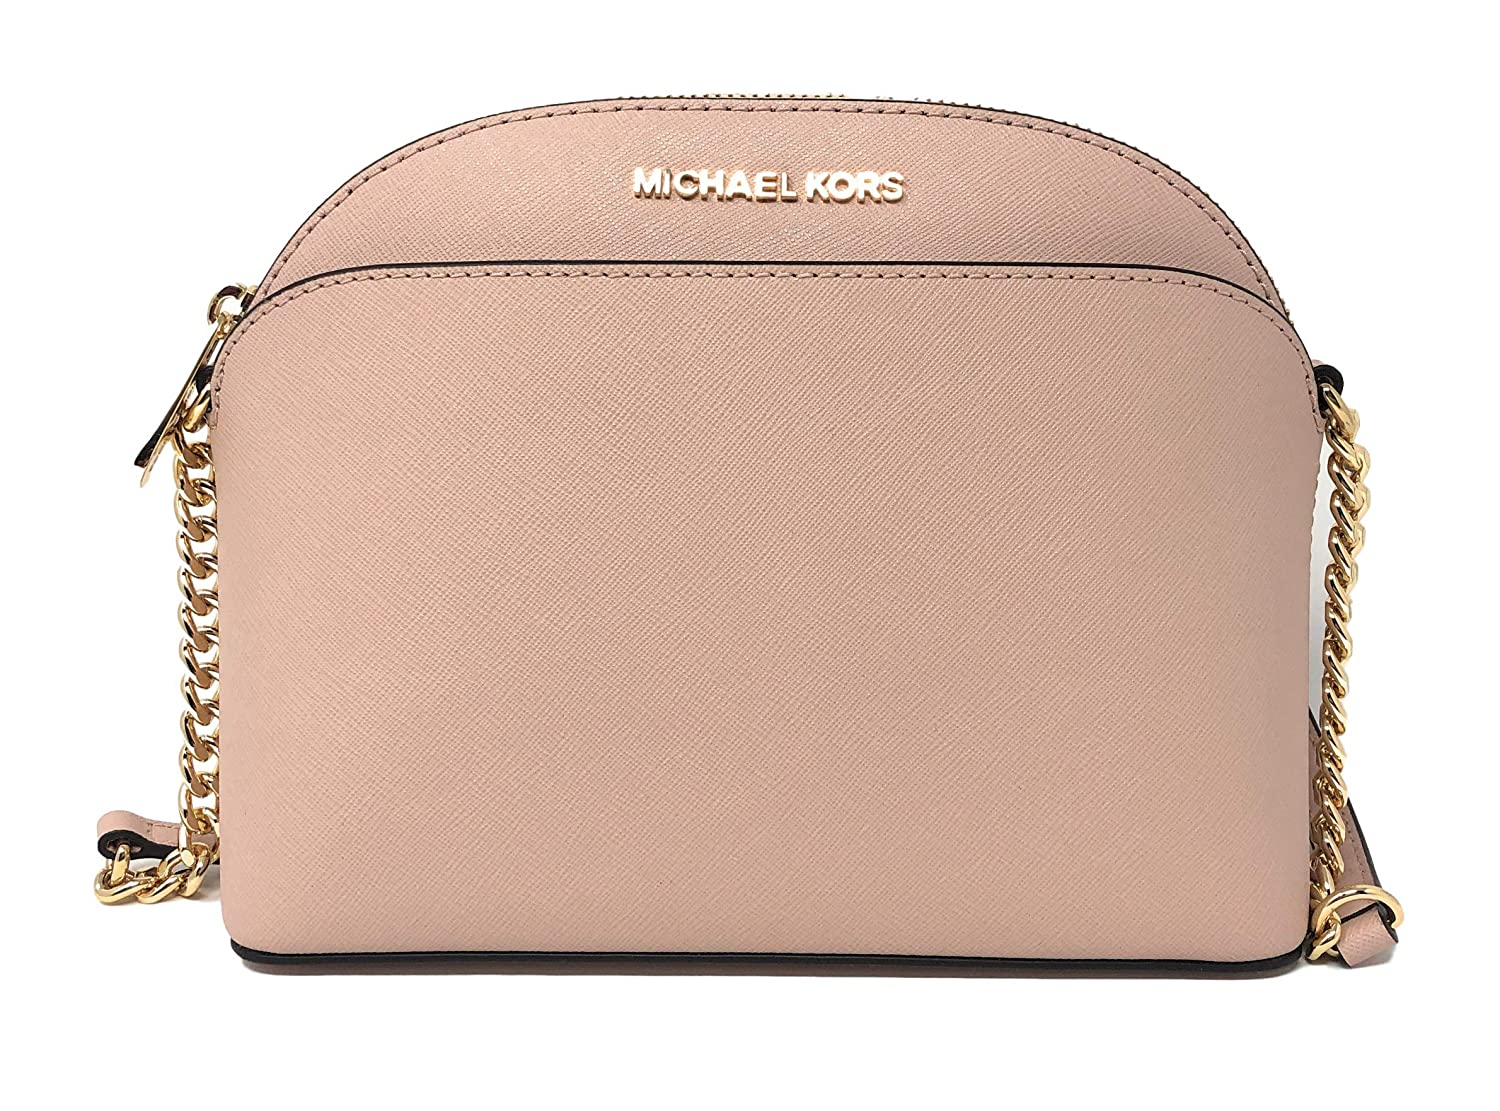 7a45d928dcdcb9 Michael Kors Emmy Medium Leather Crossbody Bag in Ballet: Handbags:  Amazon.com